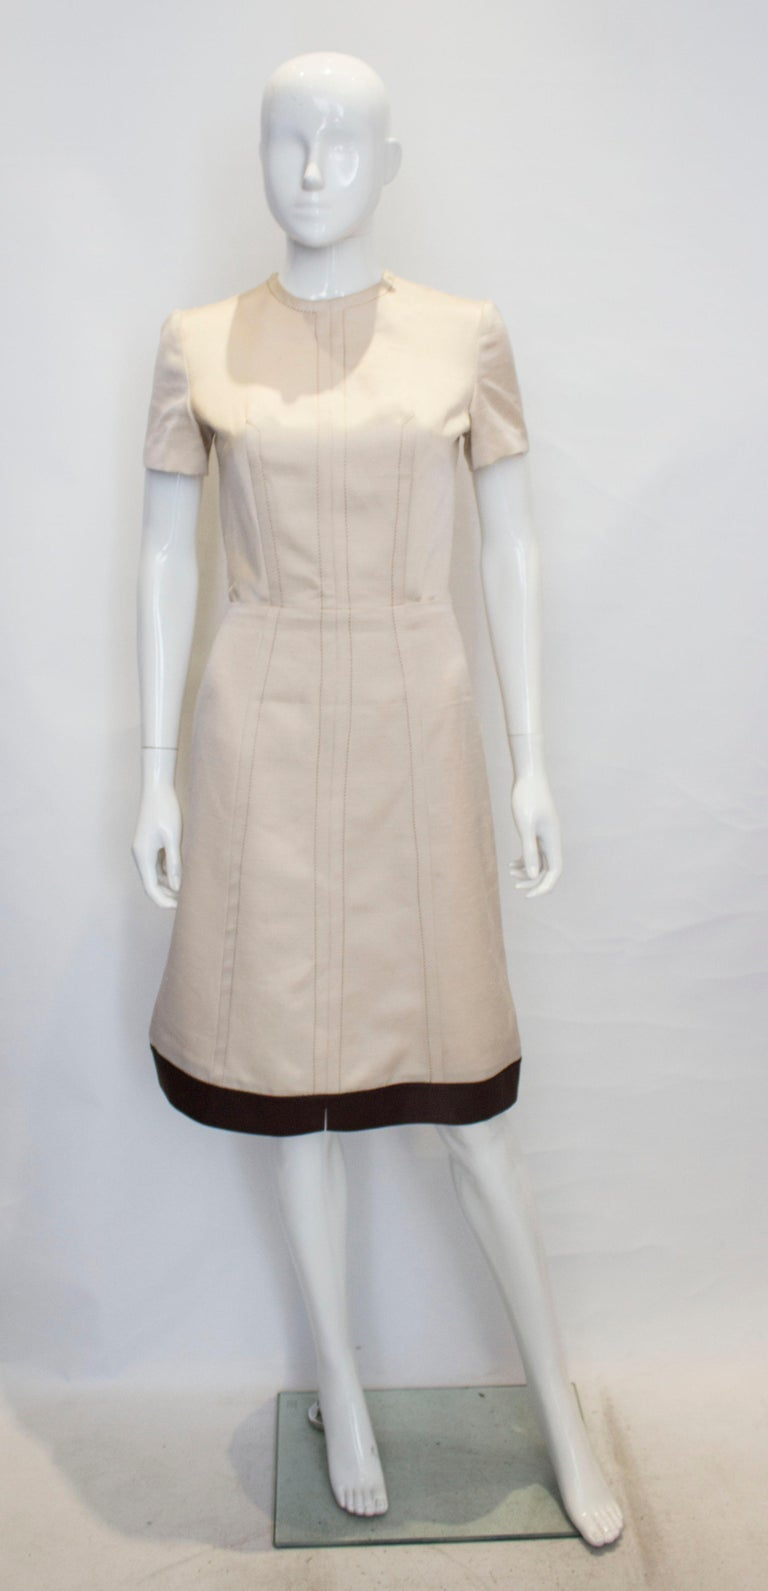 A vintage 1960s cream fitted raw silk dress with a brown silk hem   fitted at the waist zips up the back with a interesting stitch detail across the bodice  measurements taken flat in inches   bust - 16 waist - 13 length - 41